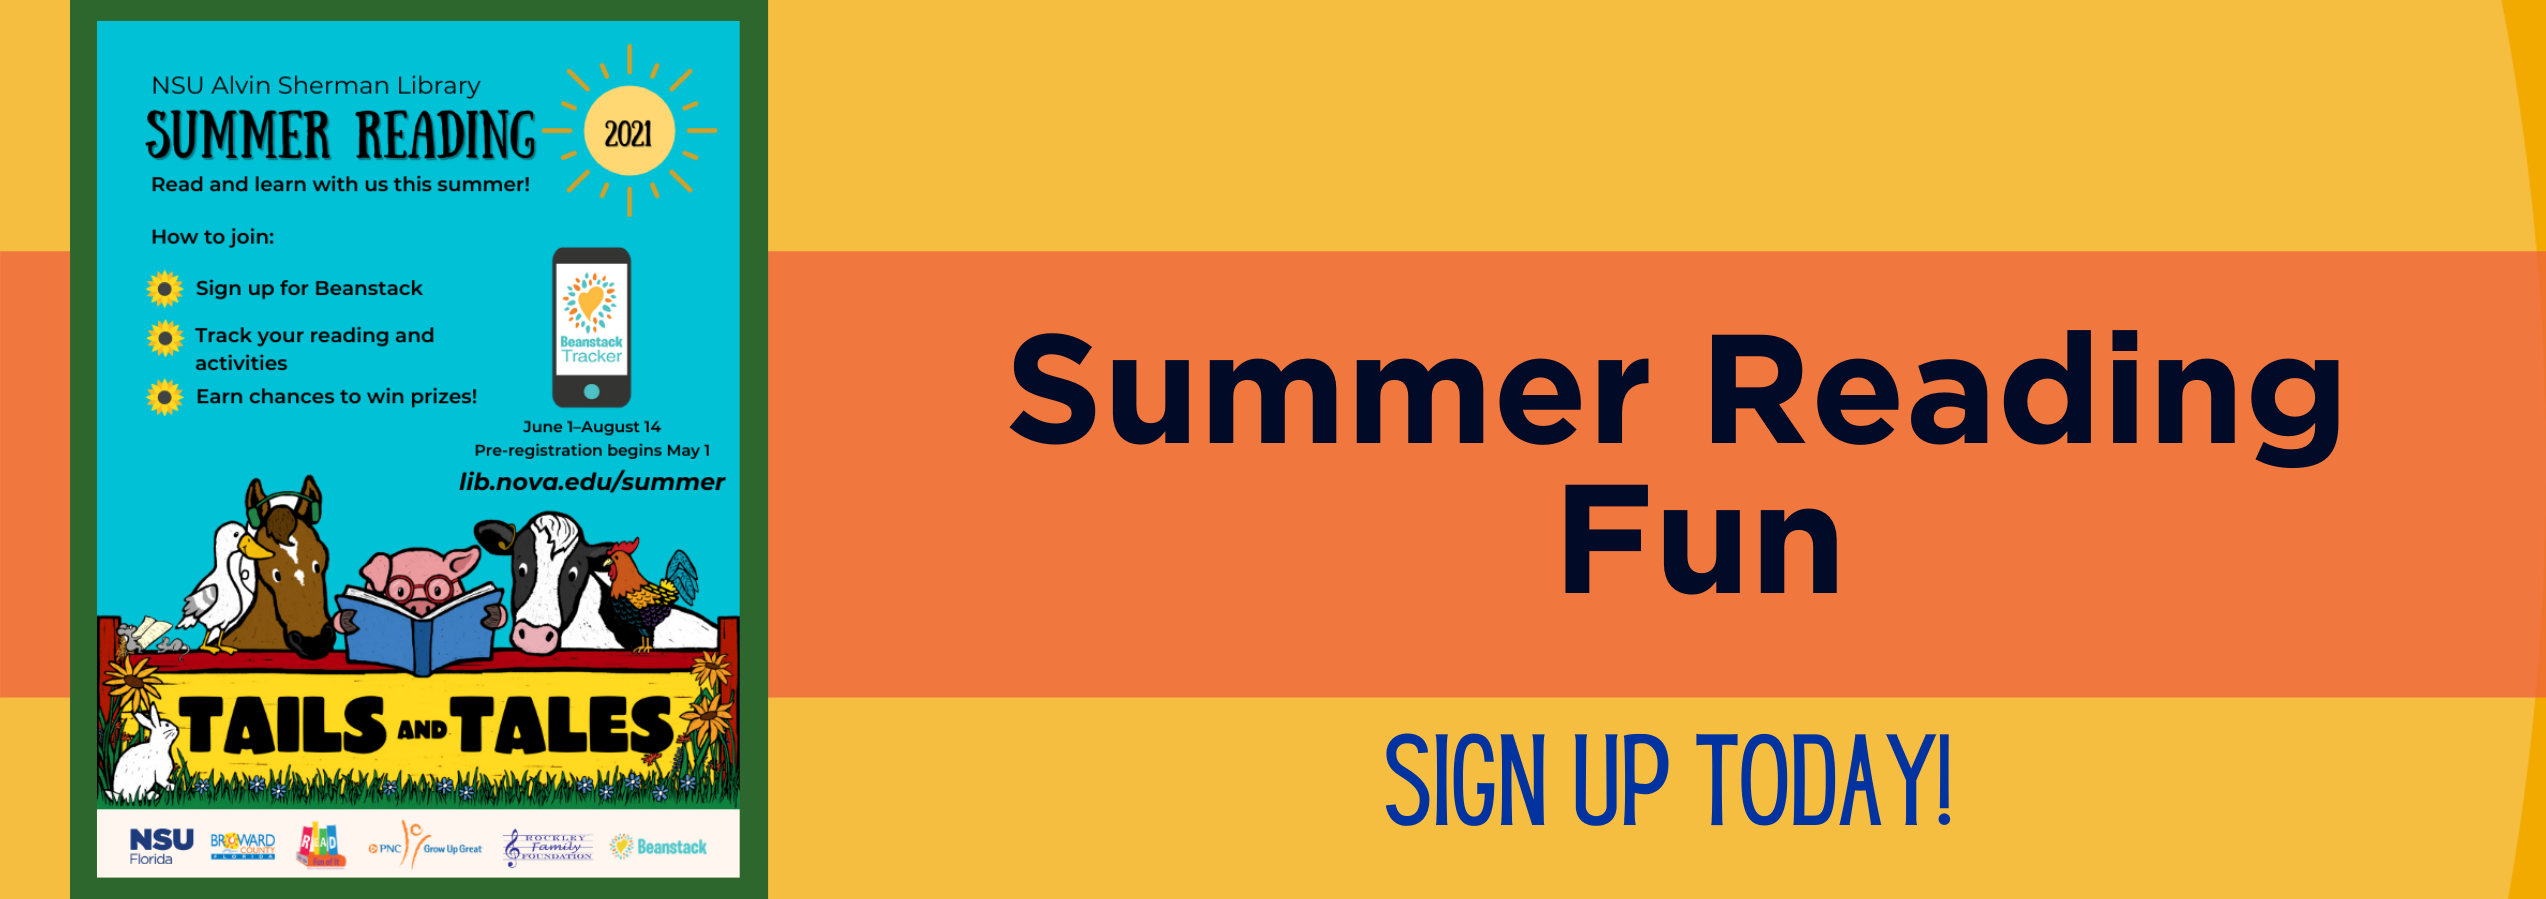 Sign Up/Sign In for Summer Reading